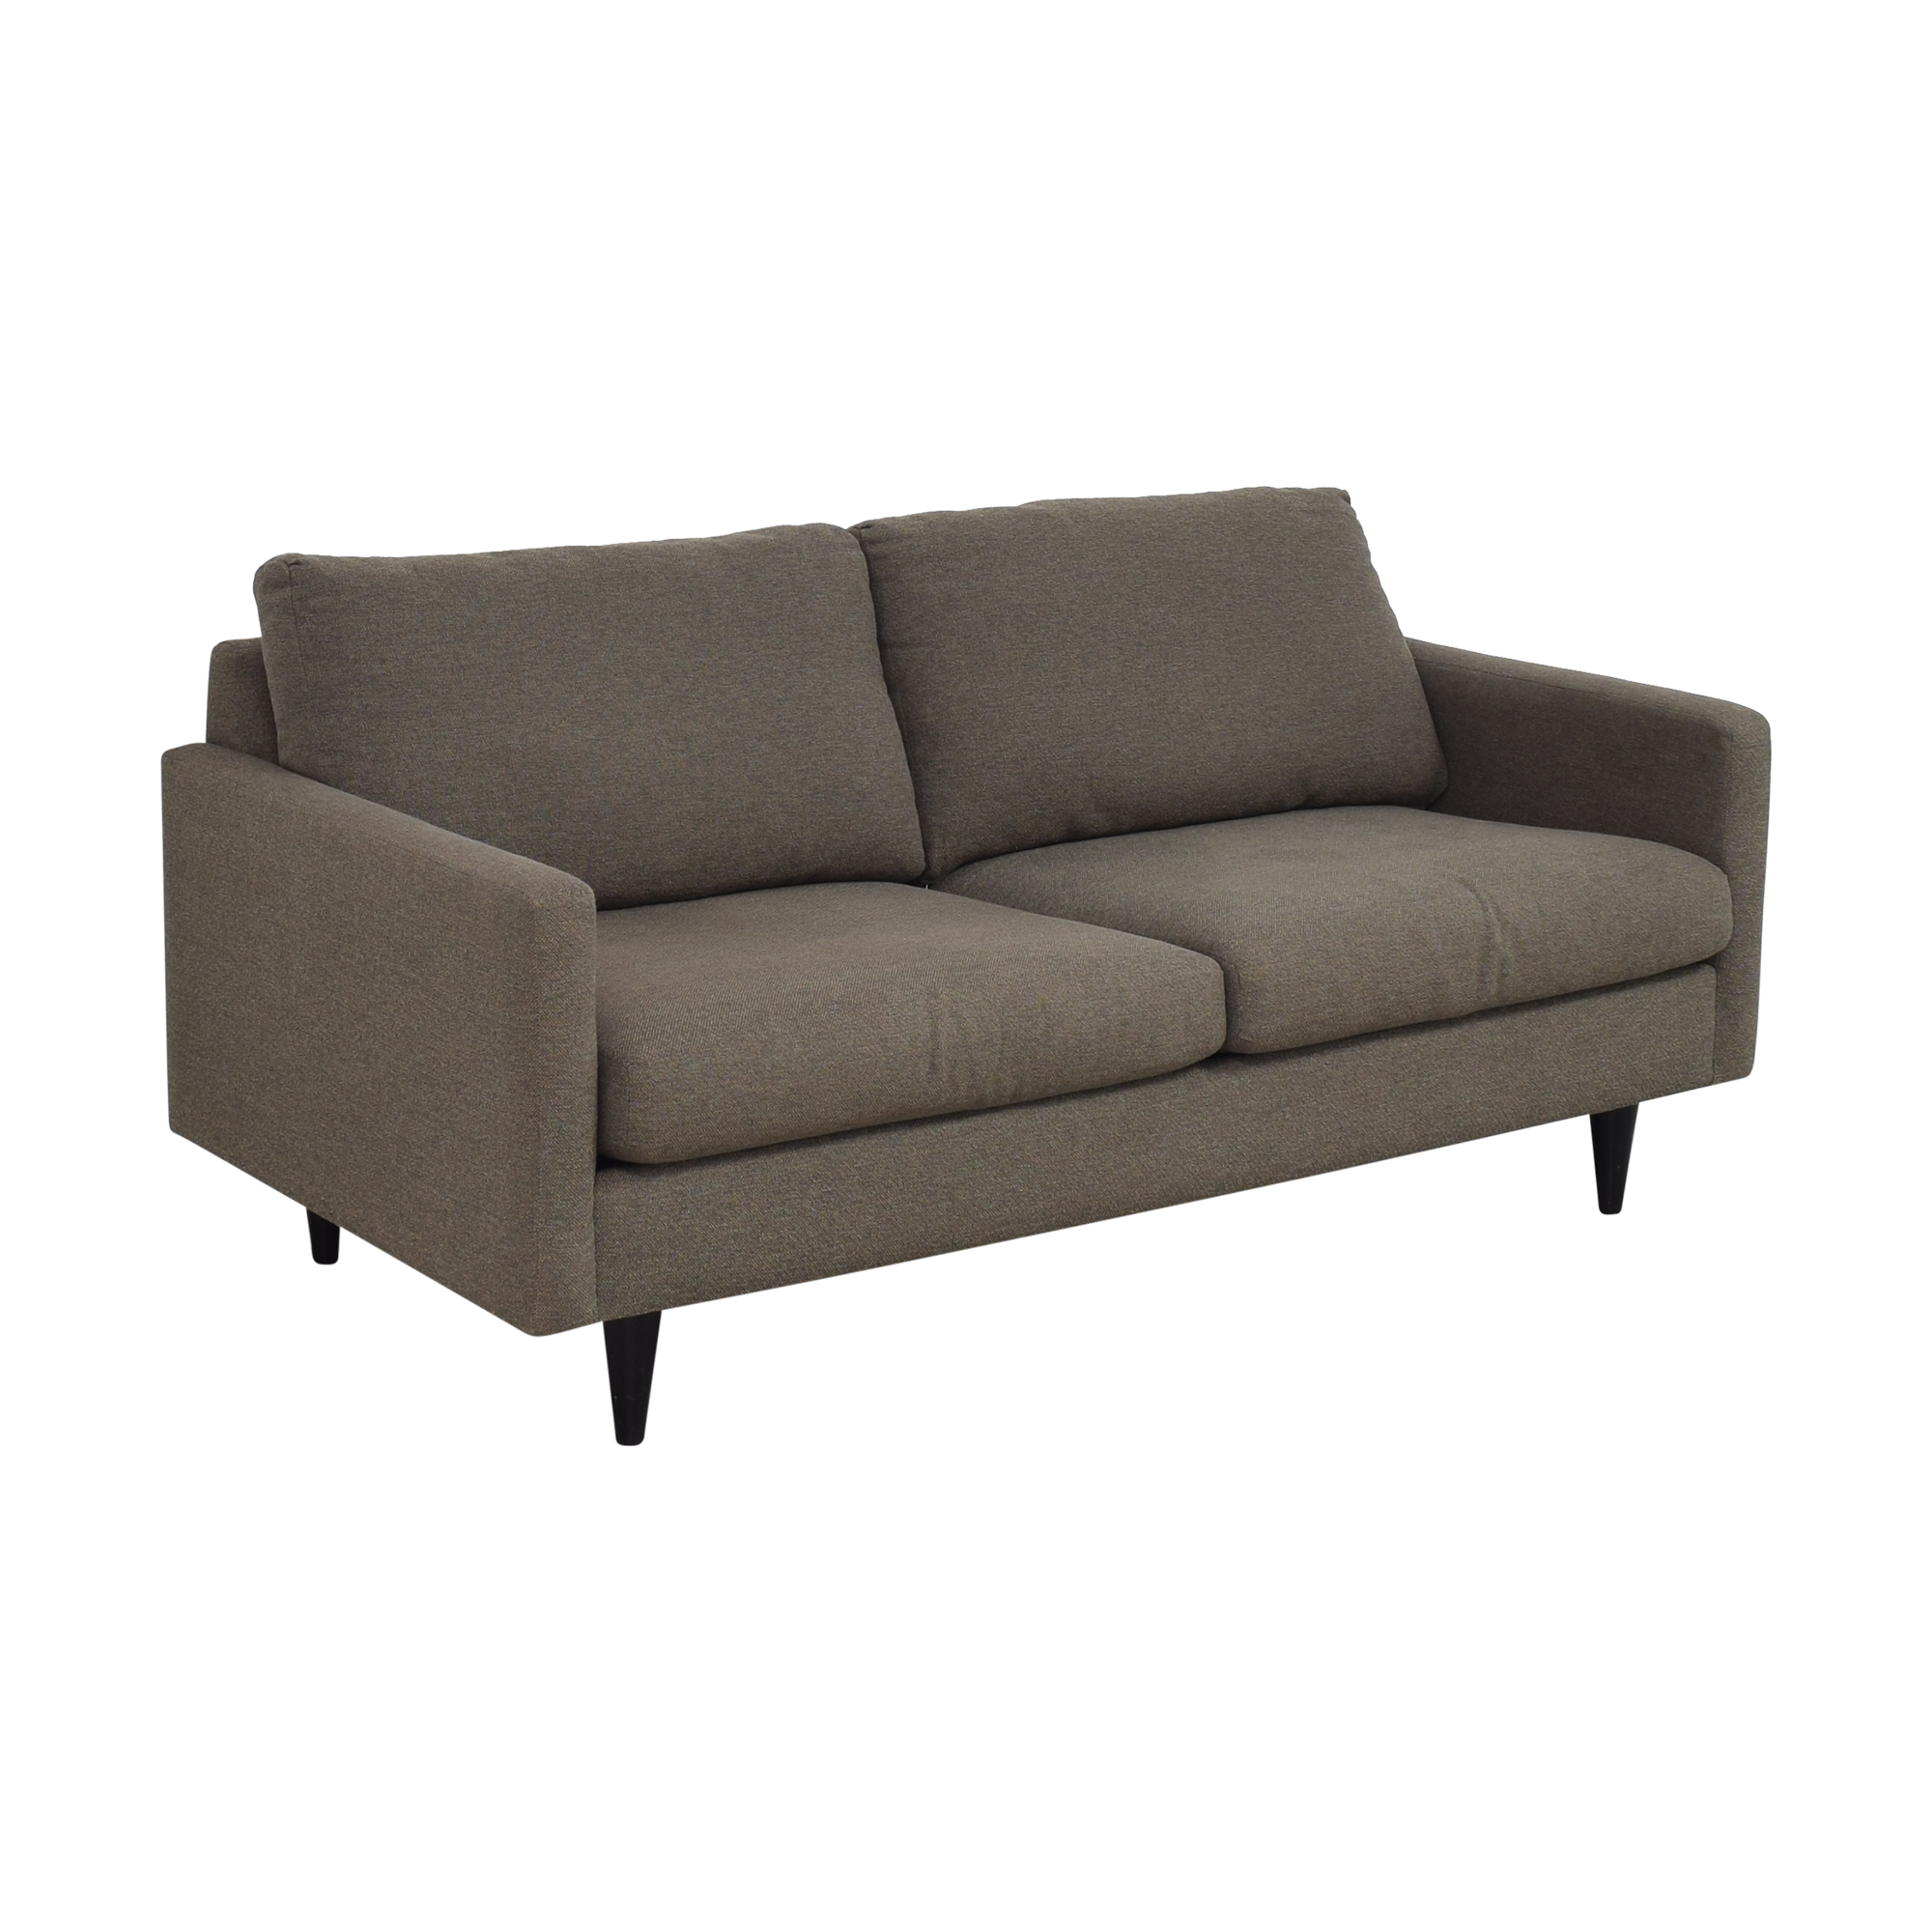 Younger Furniture Younger Furniture Lenny Apartment Sofa discount